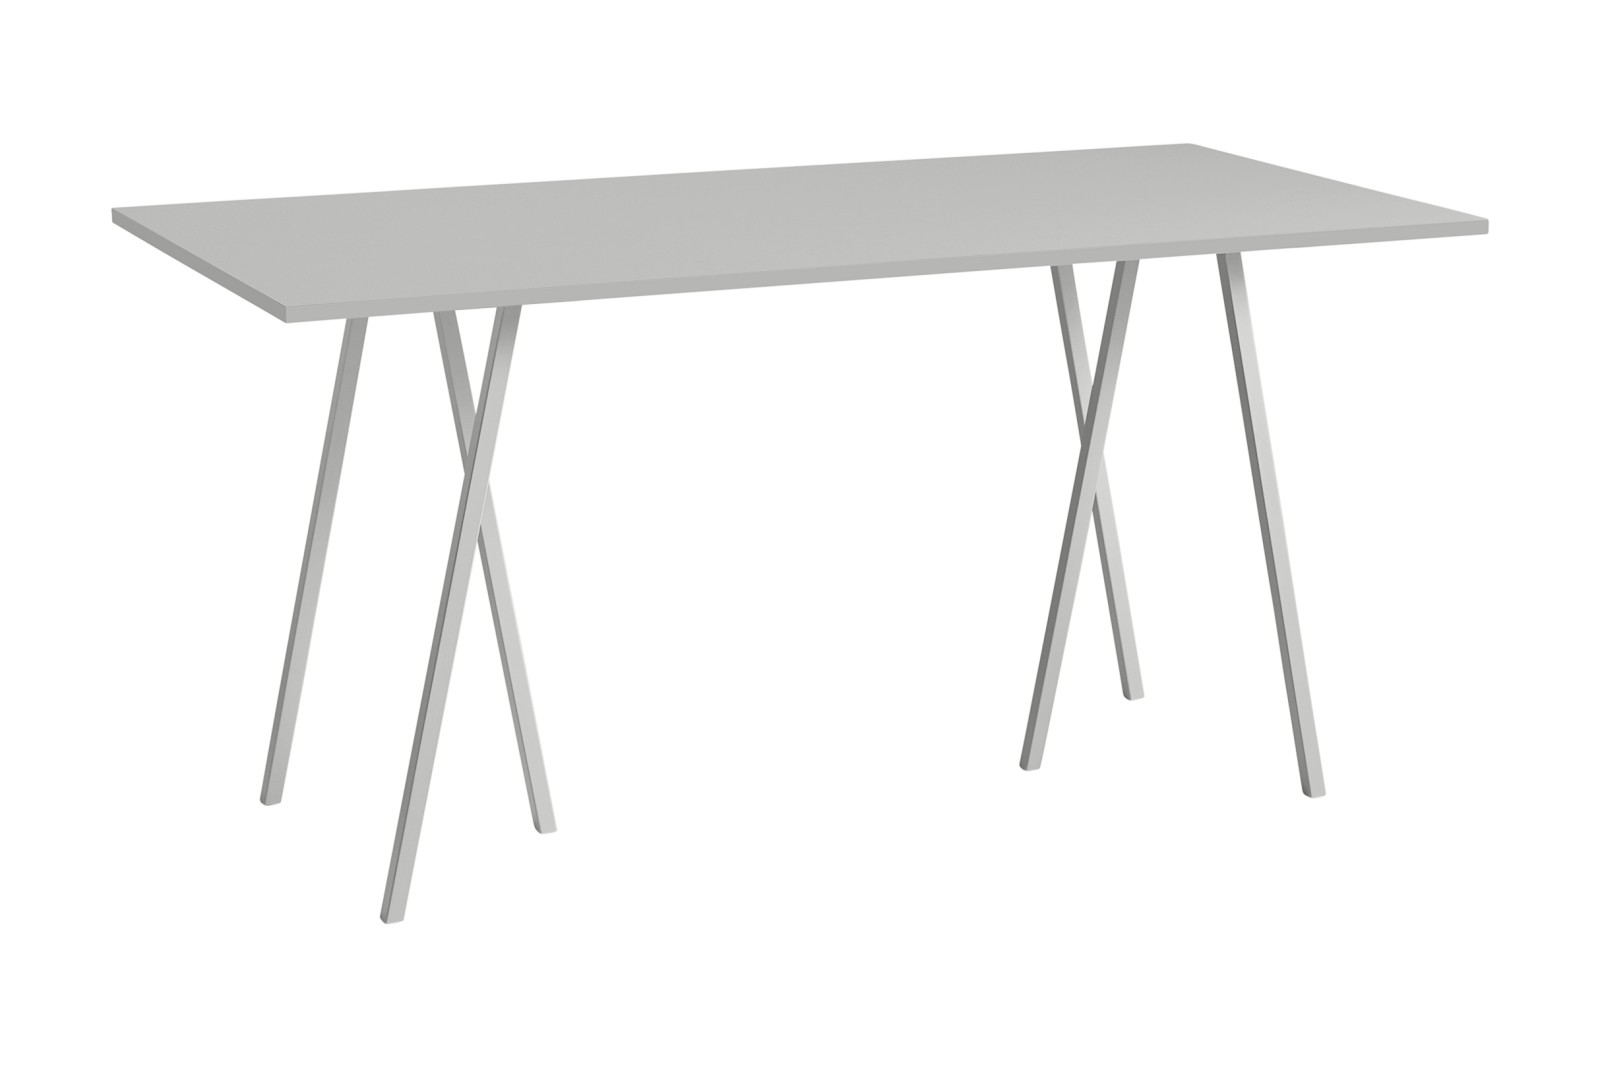 Loop Stand Rectangular Dining Table Grey, 200